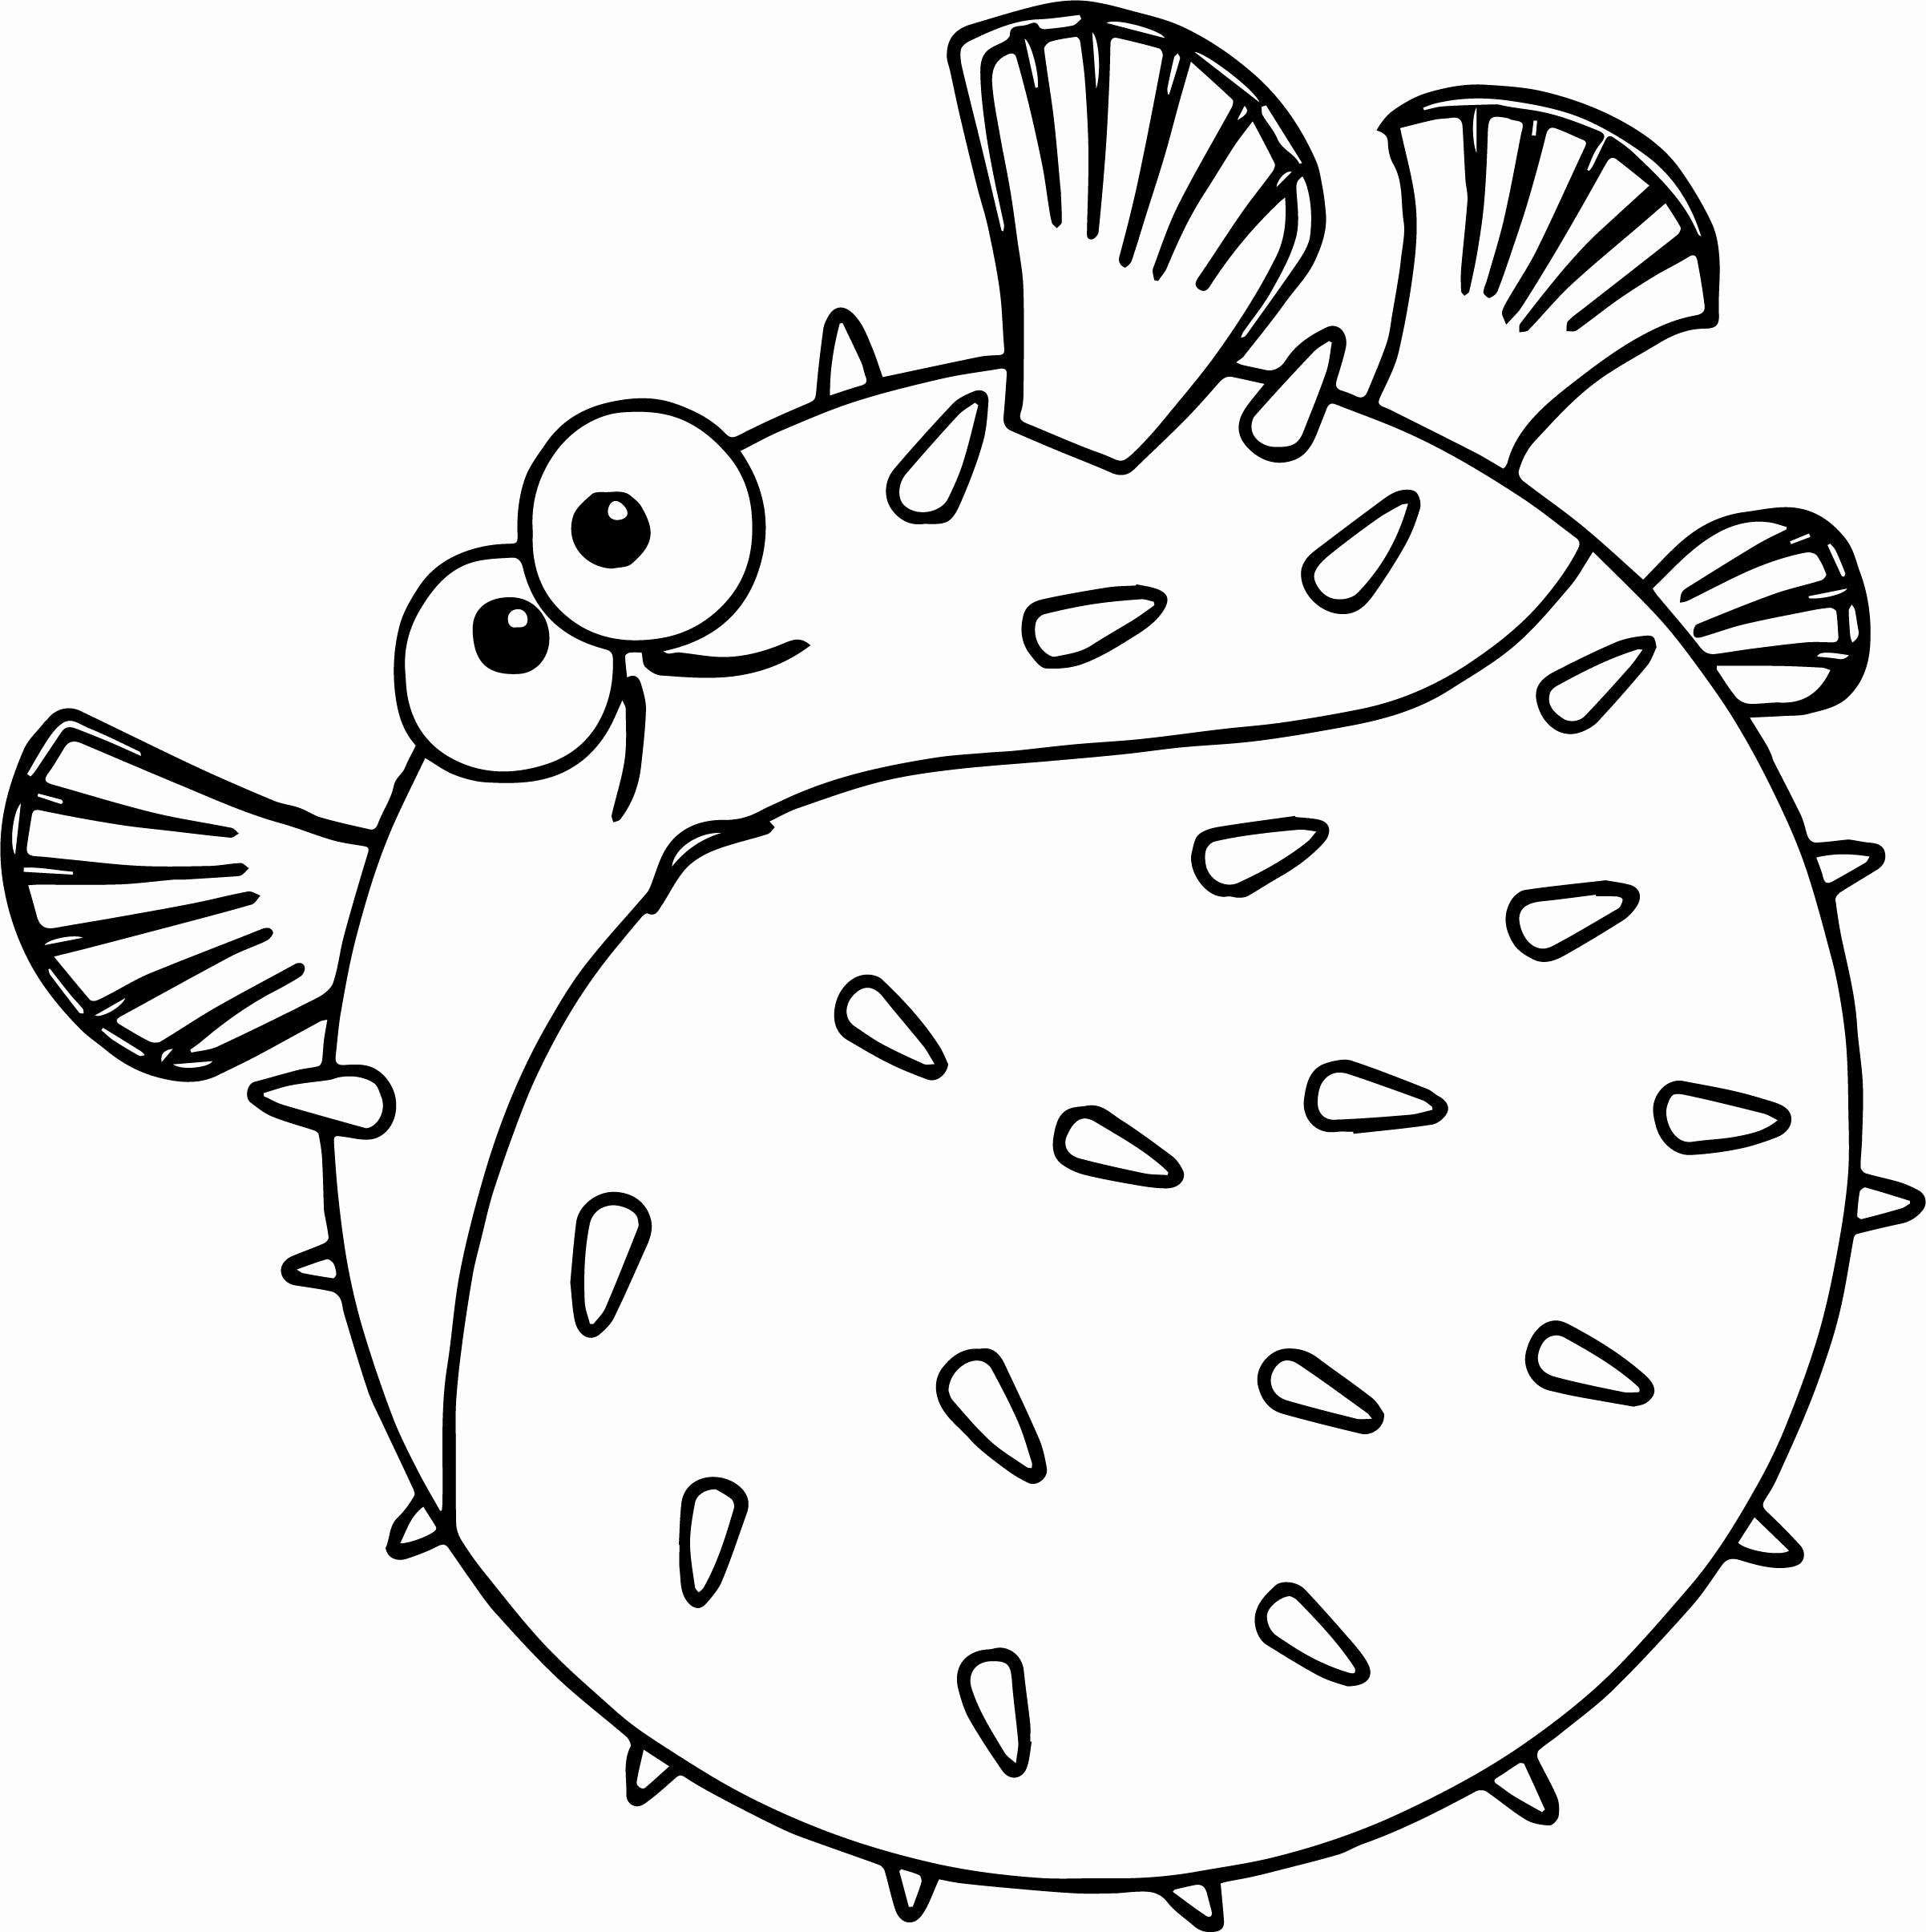 Nemo Coloring Pages At Getcolorings